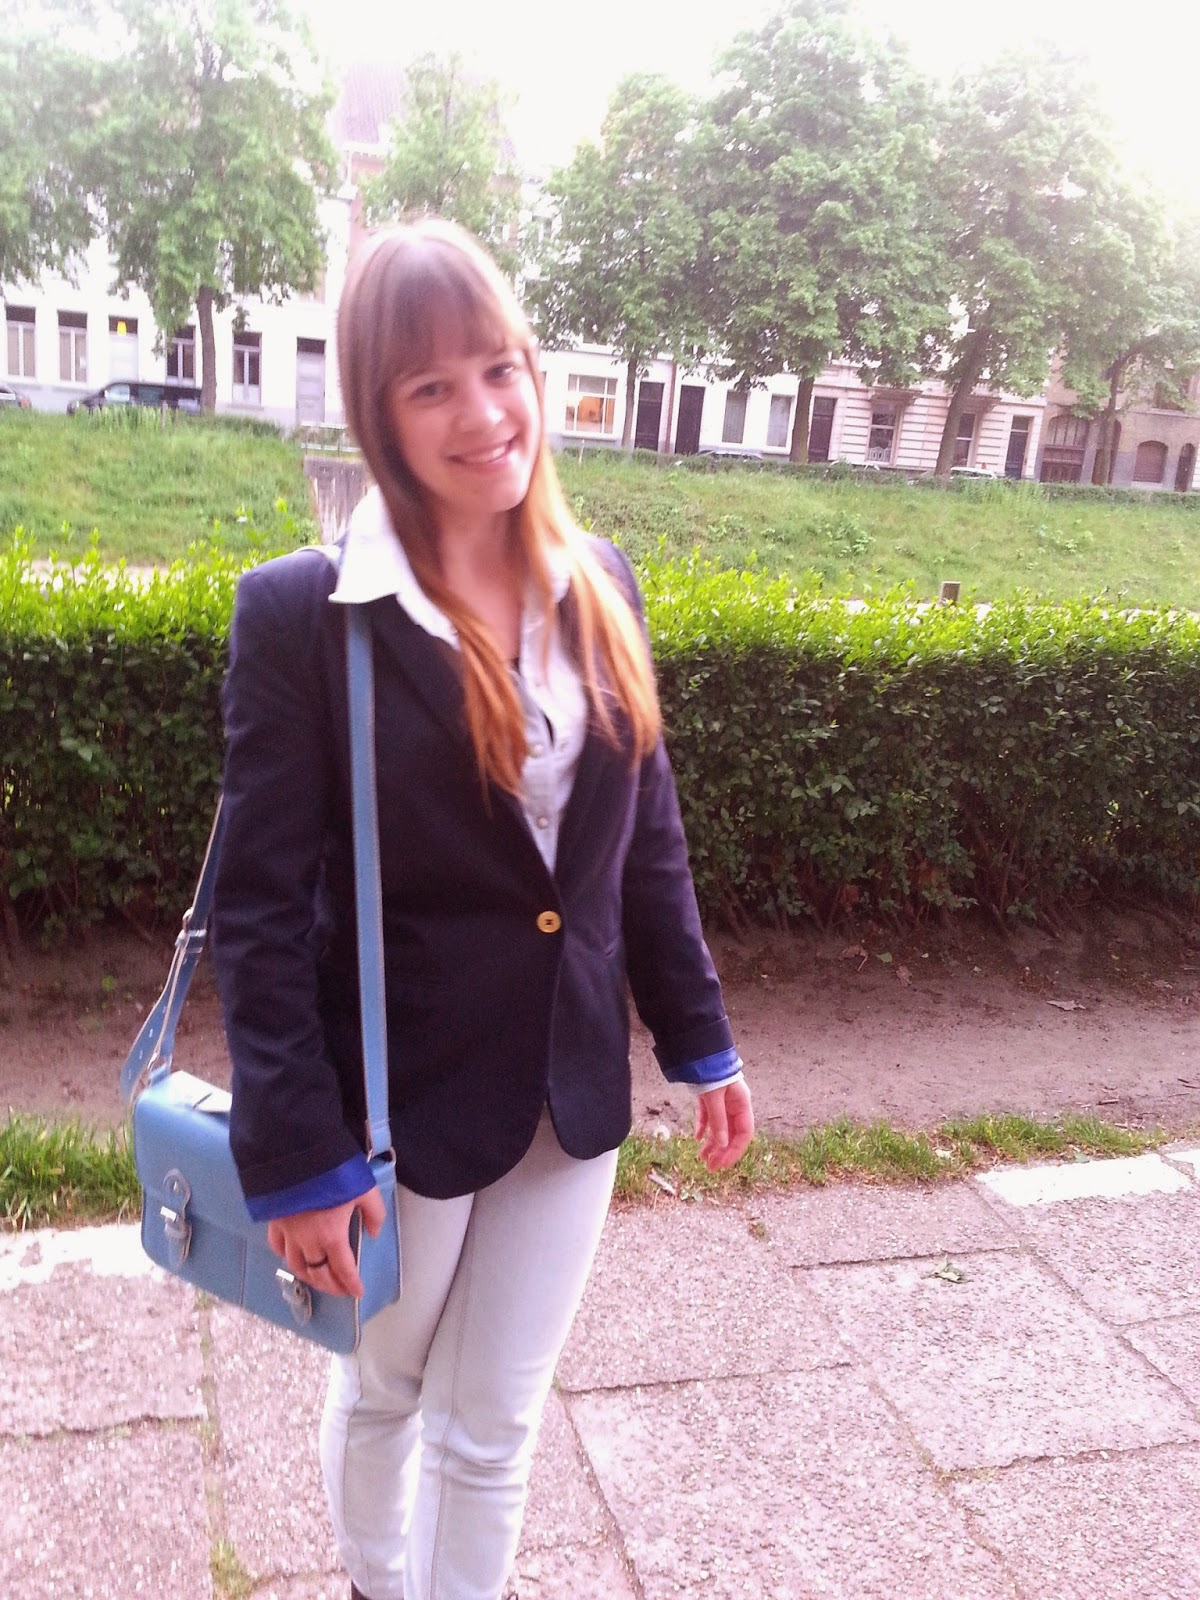 Clothes & Dreams: OOTD: That blazer, again: outfit of the day with primark blue satchel bag